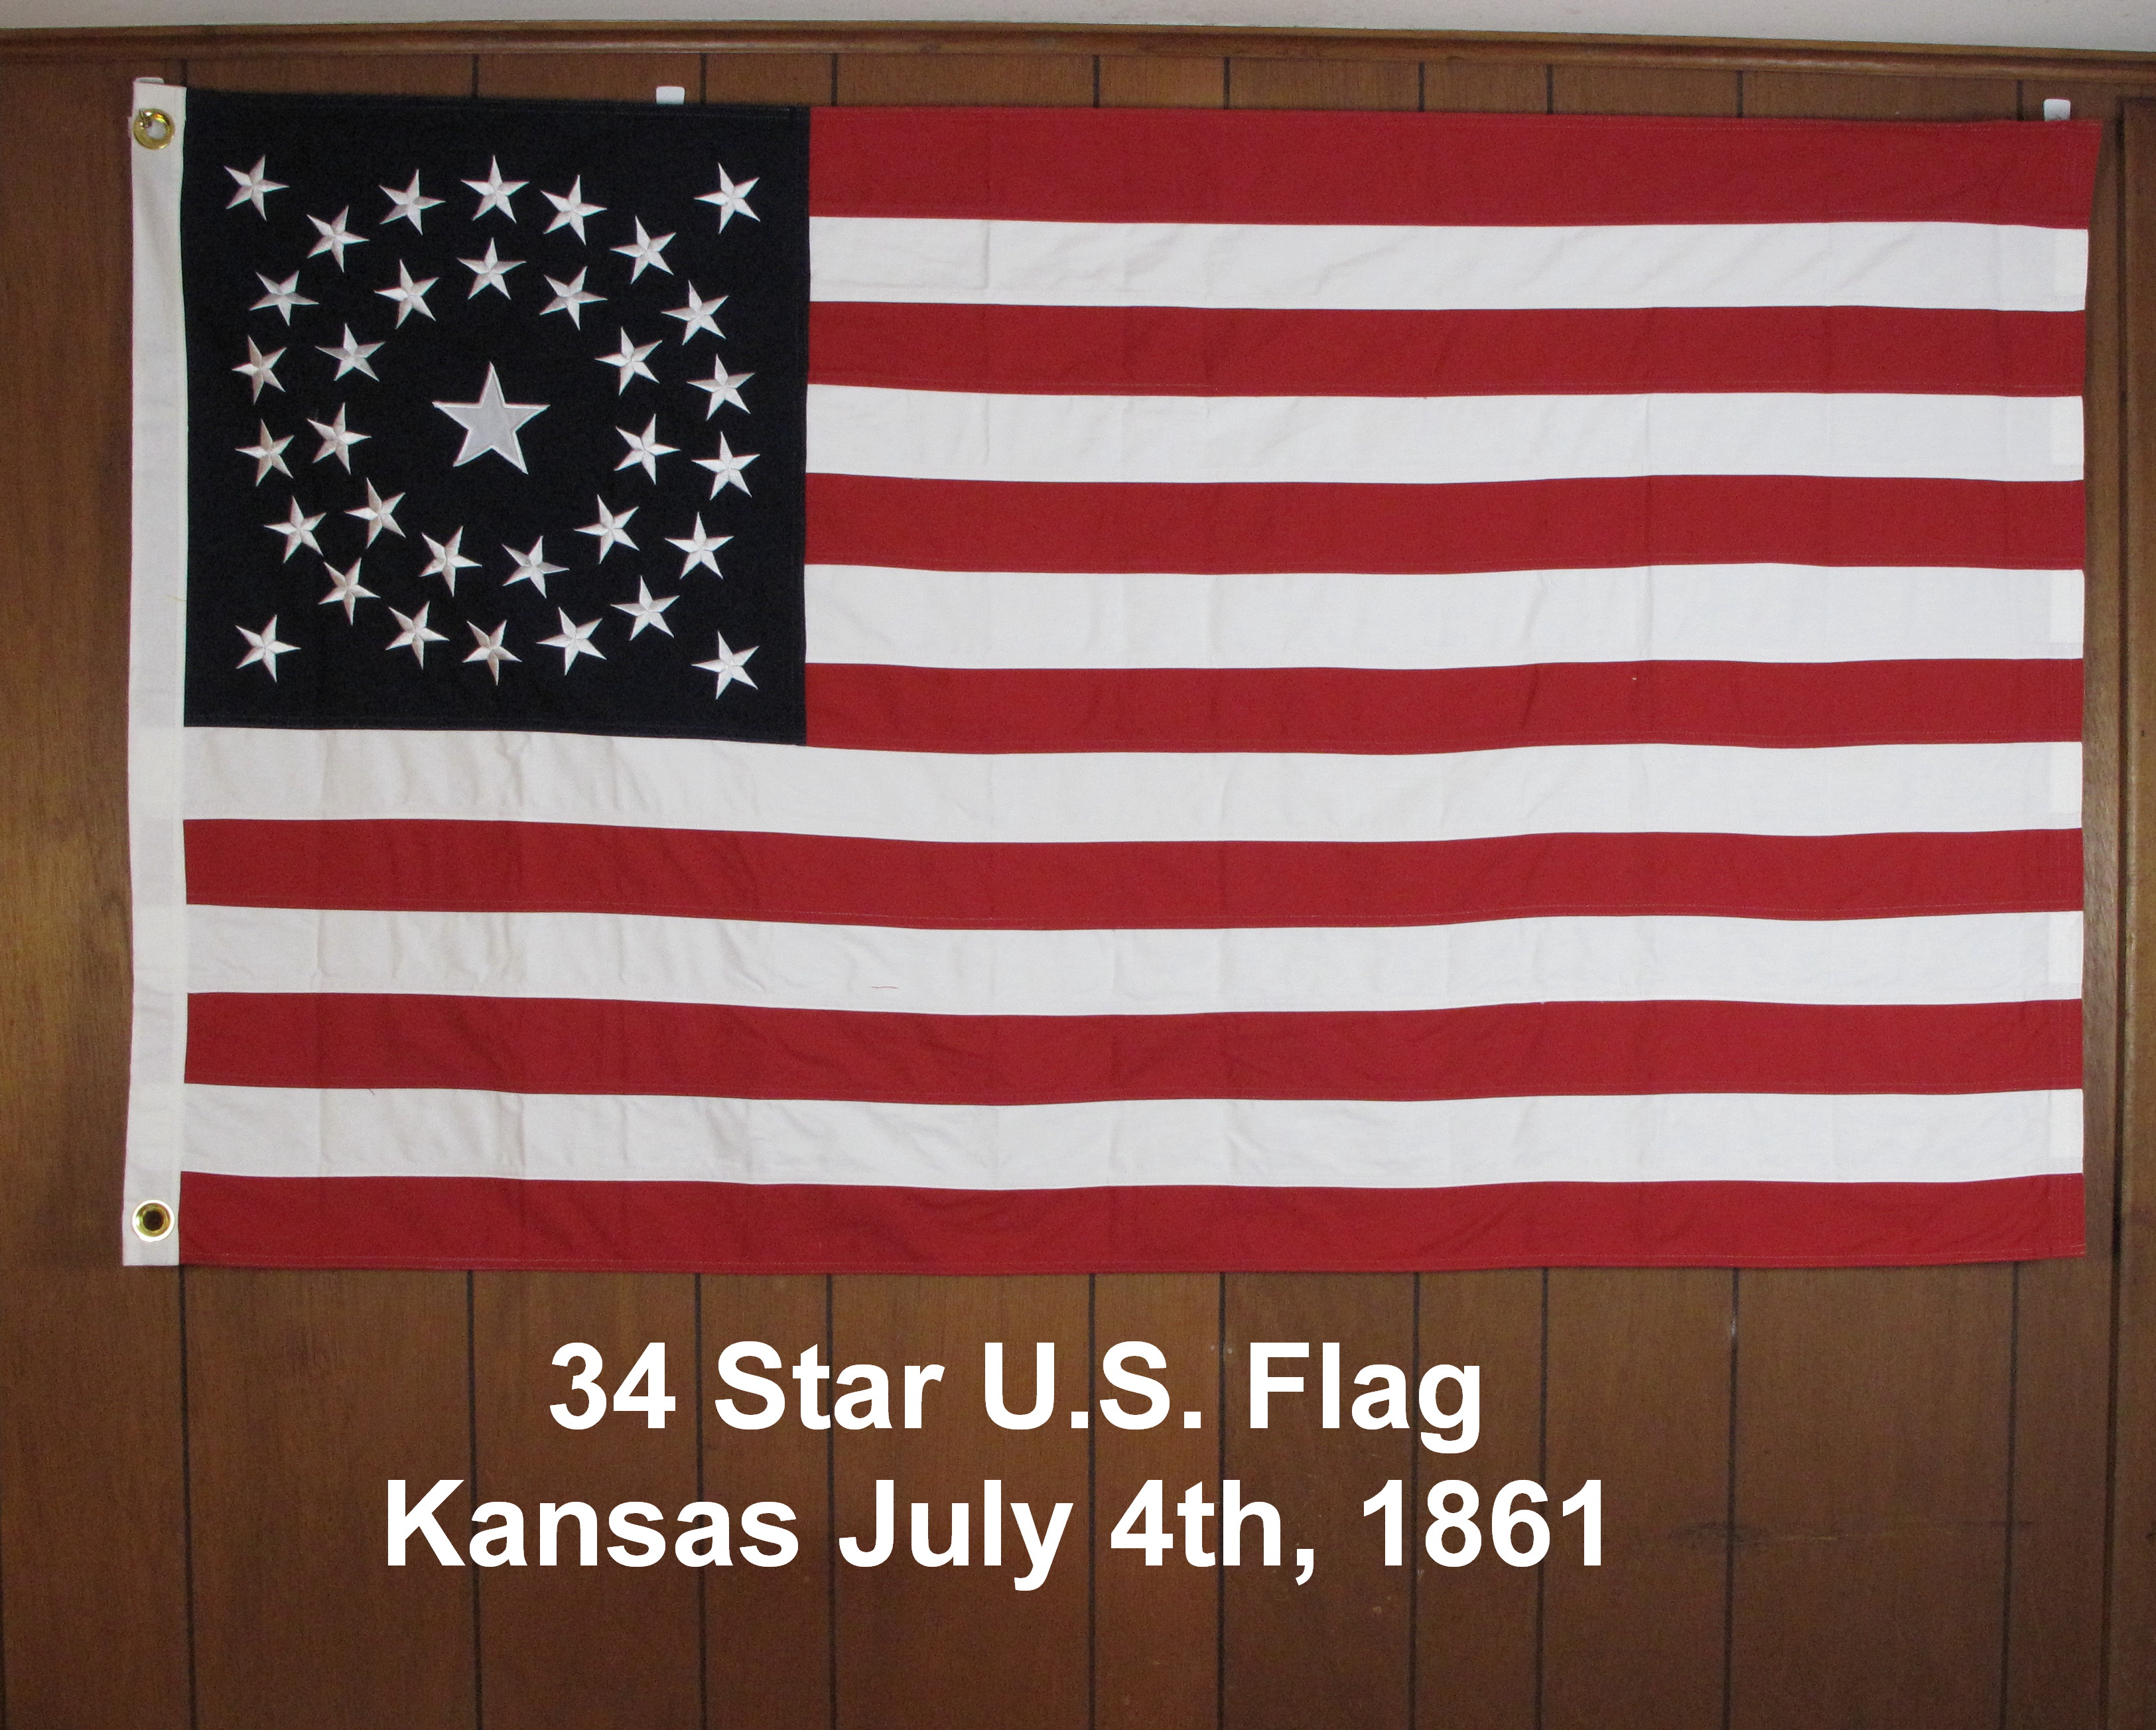 34 Star U.S. Flag Kansas 1861